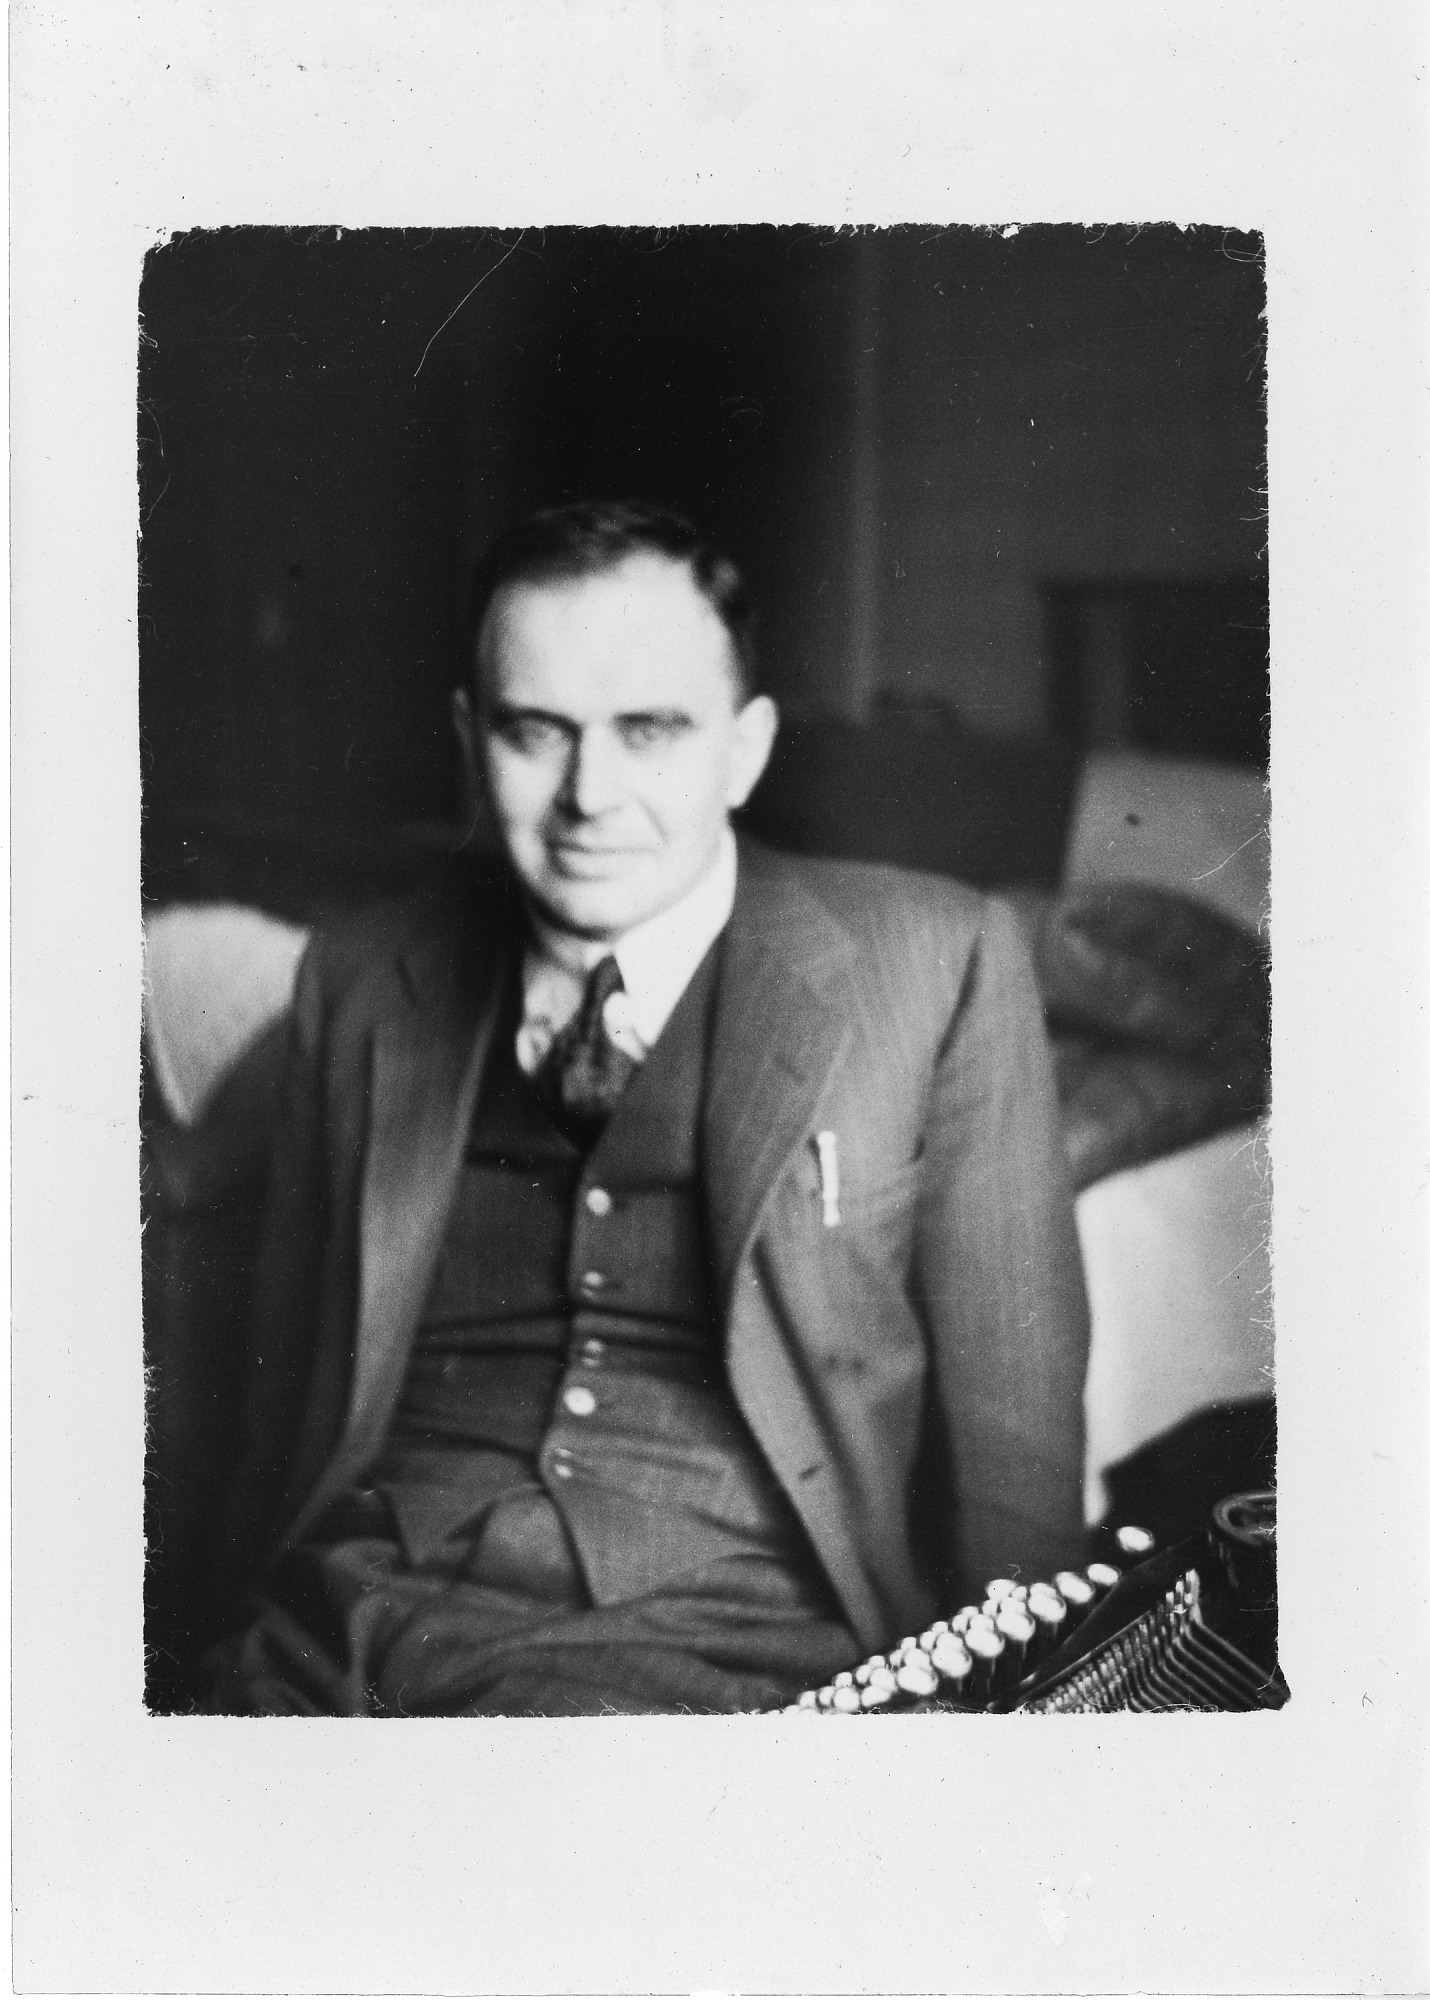 Donald Caley, 1935, Smithsonian Institution Archives, SIA Acc. 90-105 [SIA2008-0261].